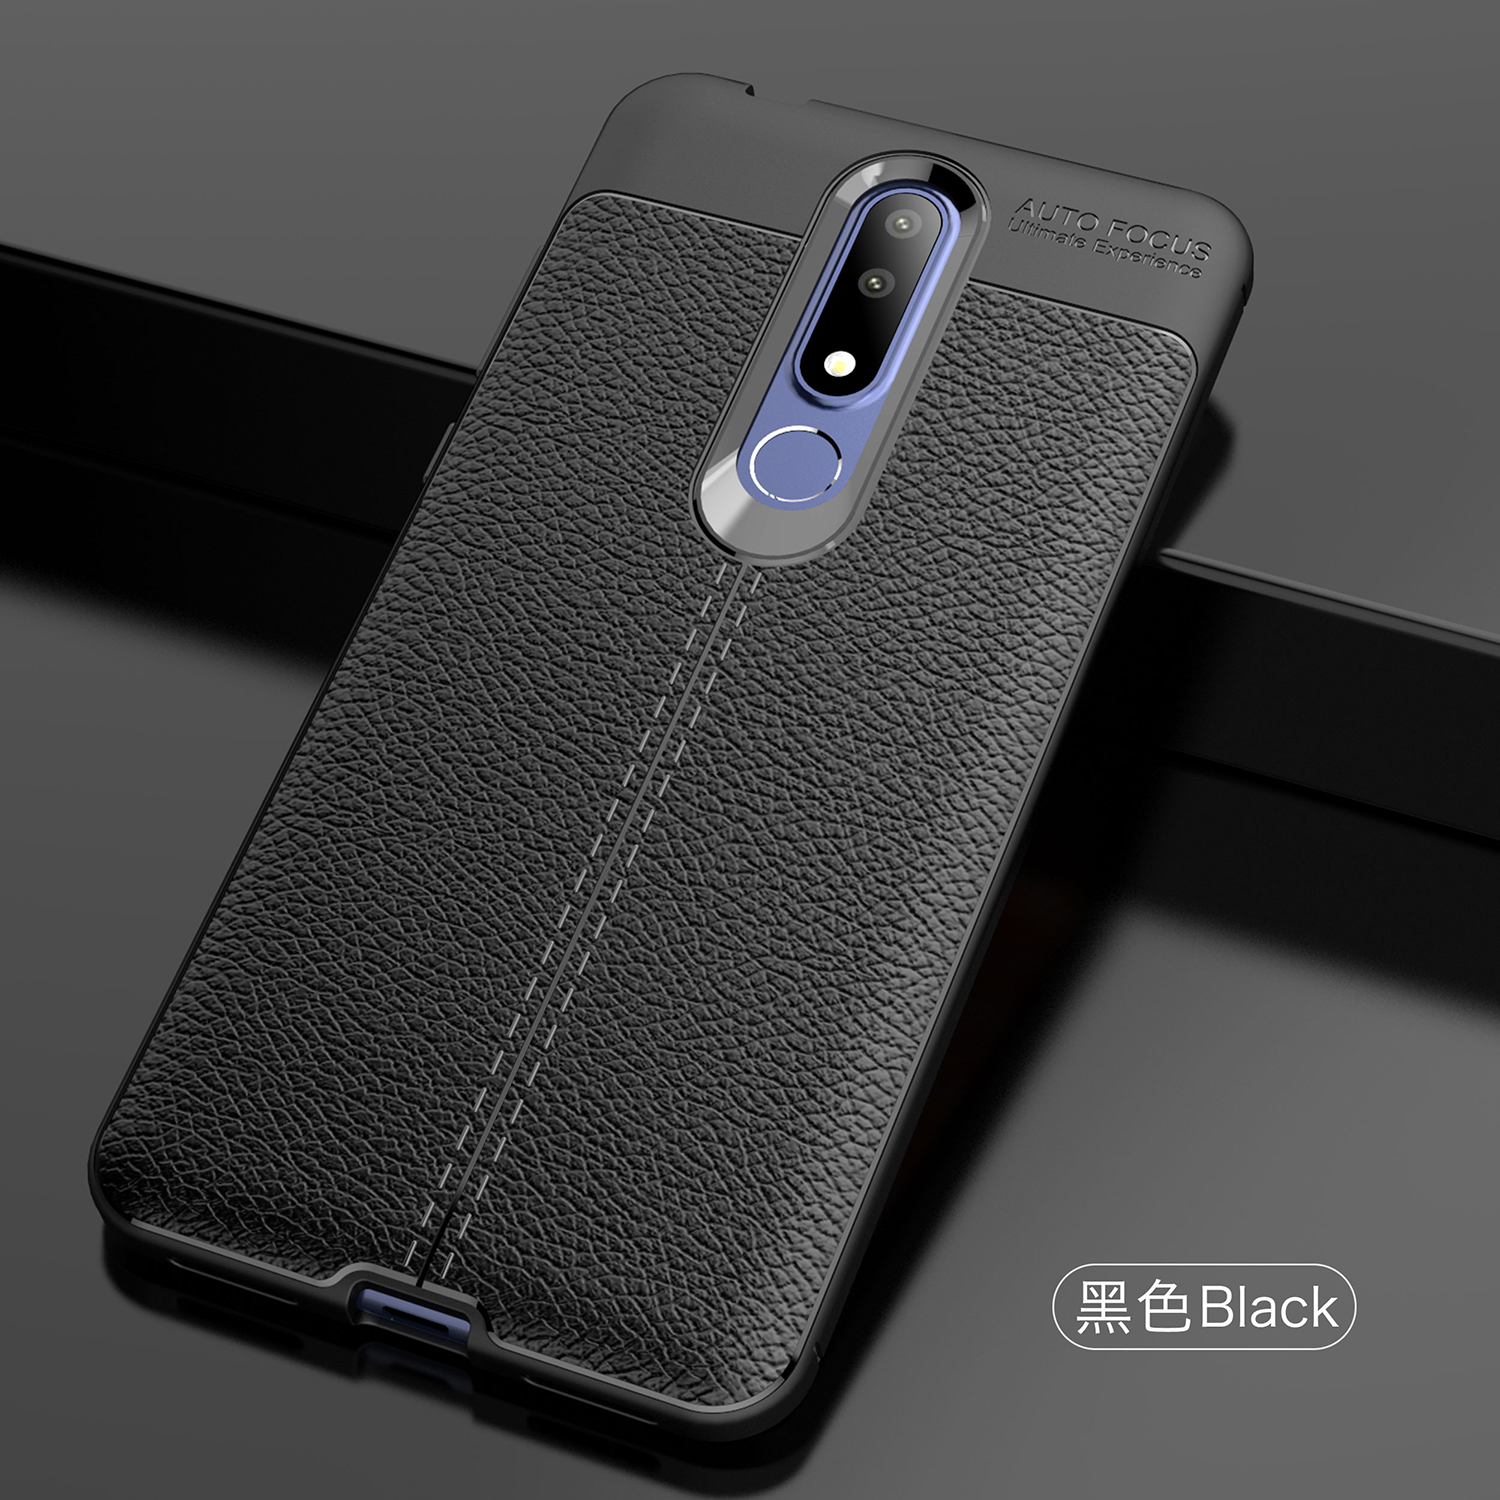 Wolfsay Soft TPU Case For <font><b>Nokia</b></font> <font><b>3.1</b></font> <font><b>Plus</b></font> Case Leather Texture Silicone Phone Cover For <font><b>Nokia</b></font> <font><b>3.1</b></font> <font><b>Plus</b></font> TA-1118 TA-1117 Coque image